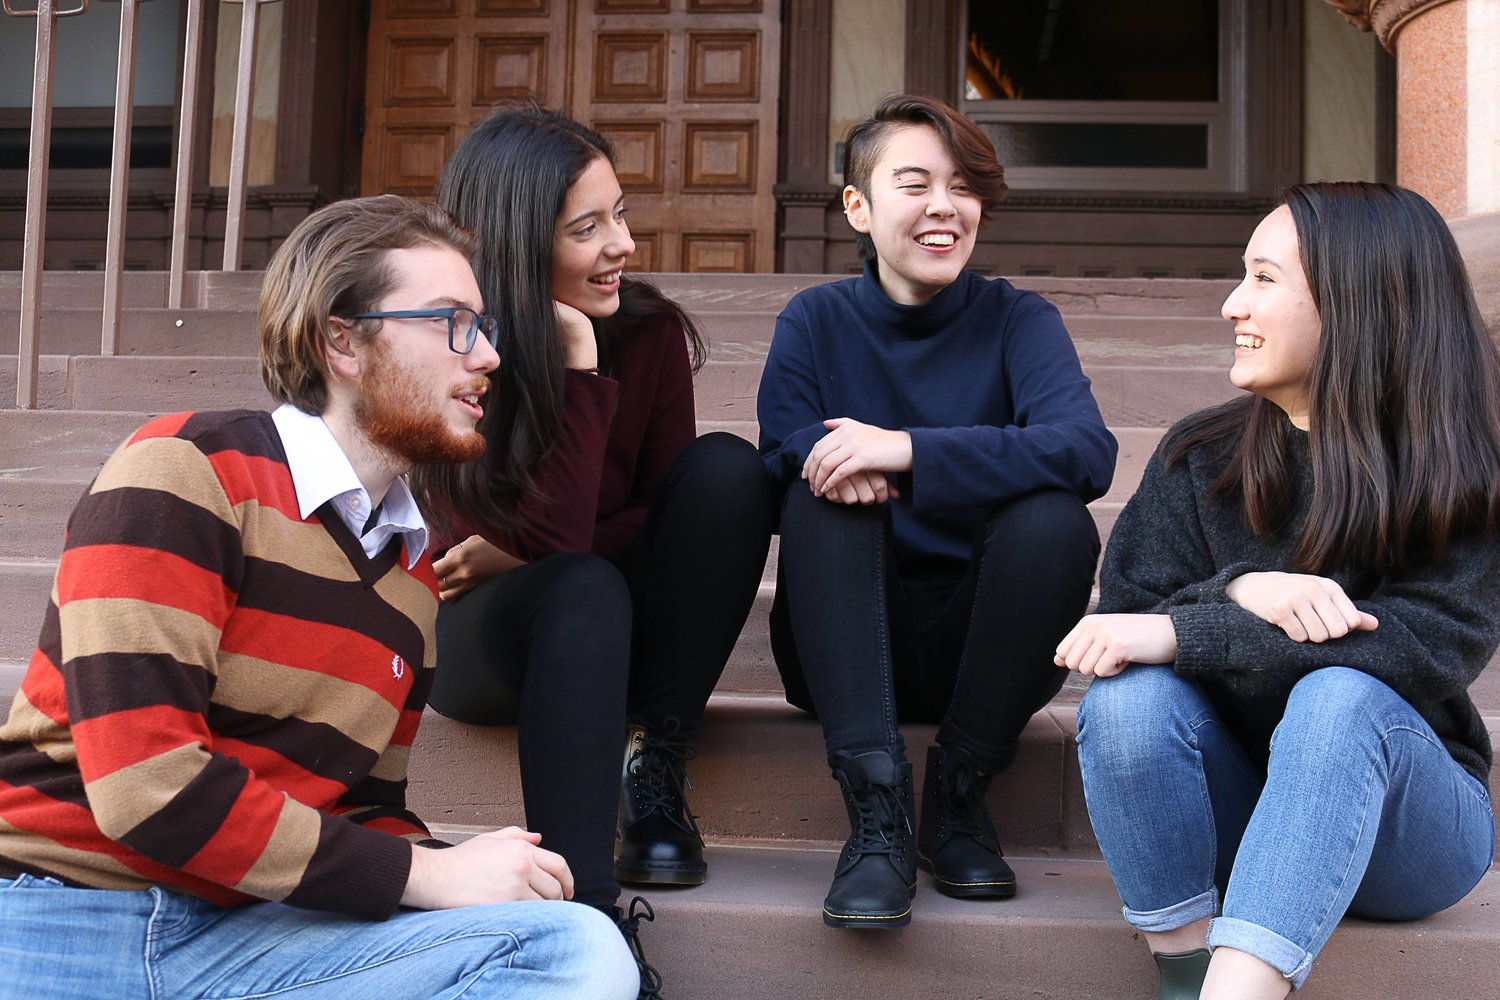 Our first executive team for the Victoria College First Ministers Conference Simulation in 2017 (from left to right: David de Paiva, Talia Holy, Mia Sanders, Kate Schneider)